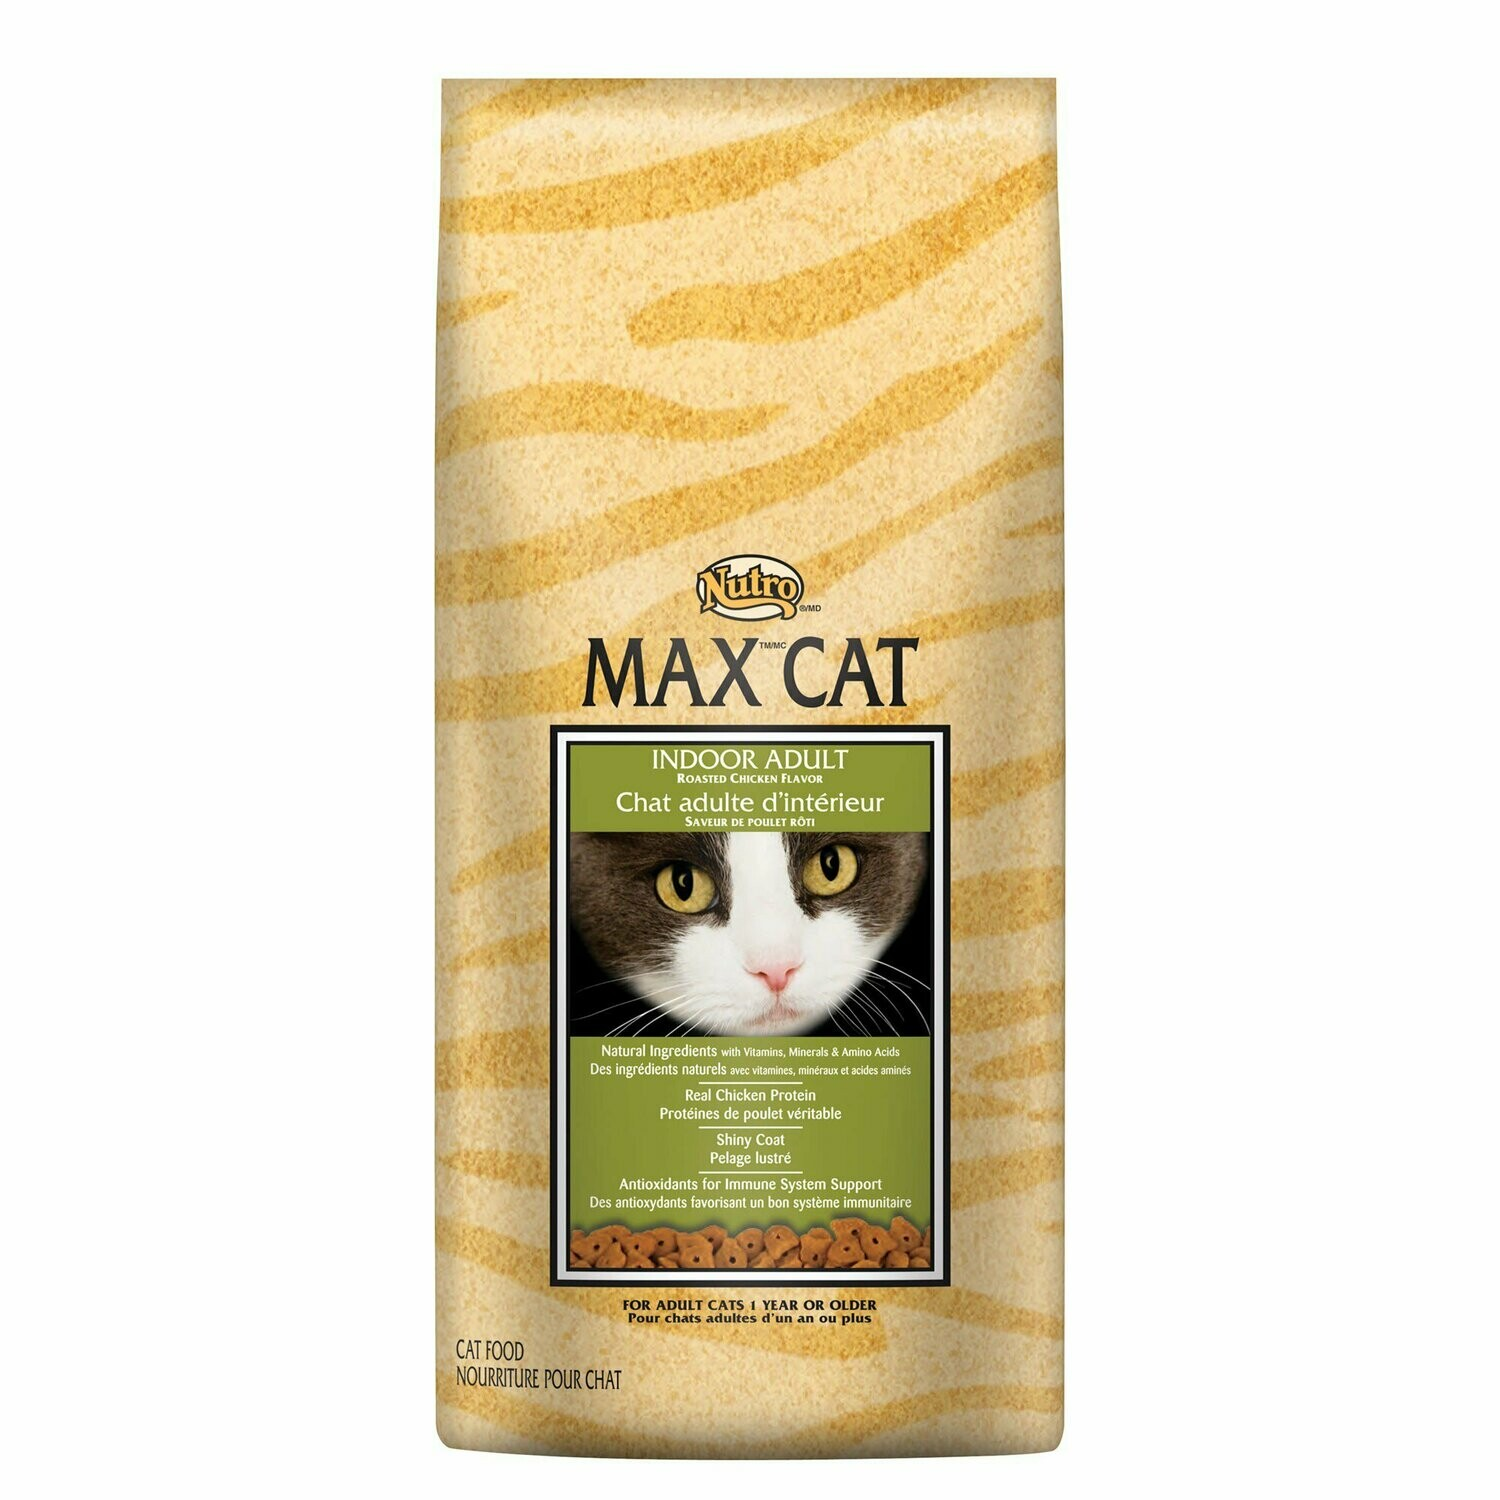 Nutro Max Healthy Cat Indoor Adult Roasted Chicken Flavor Dry Cat Food 6 Lbs (12/19) (A.F2)